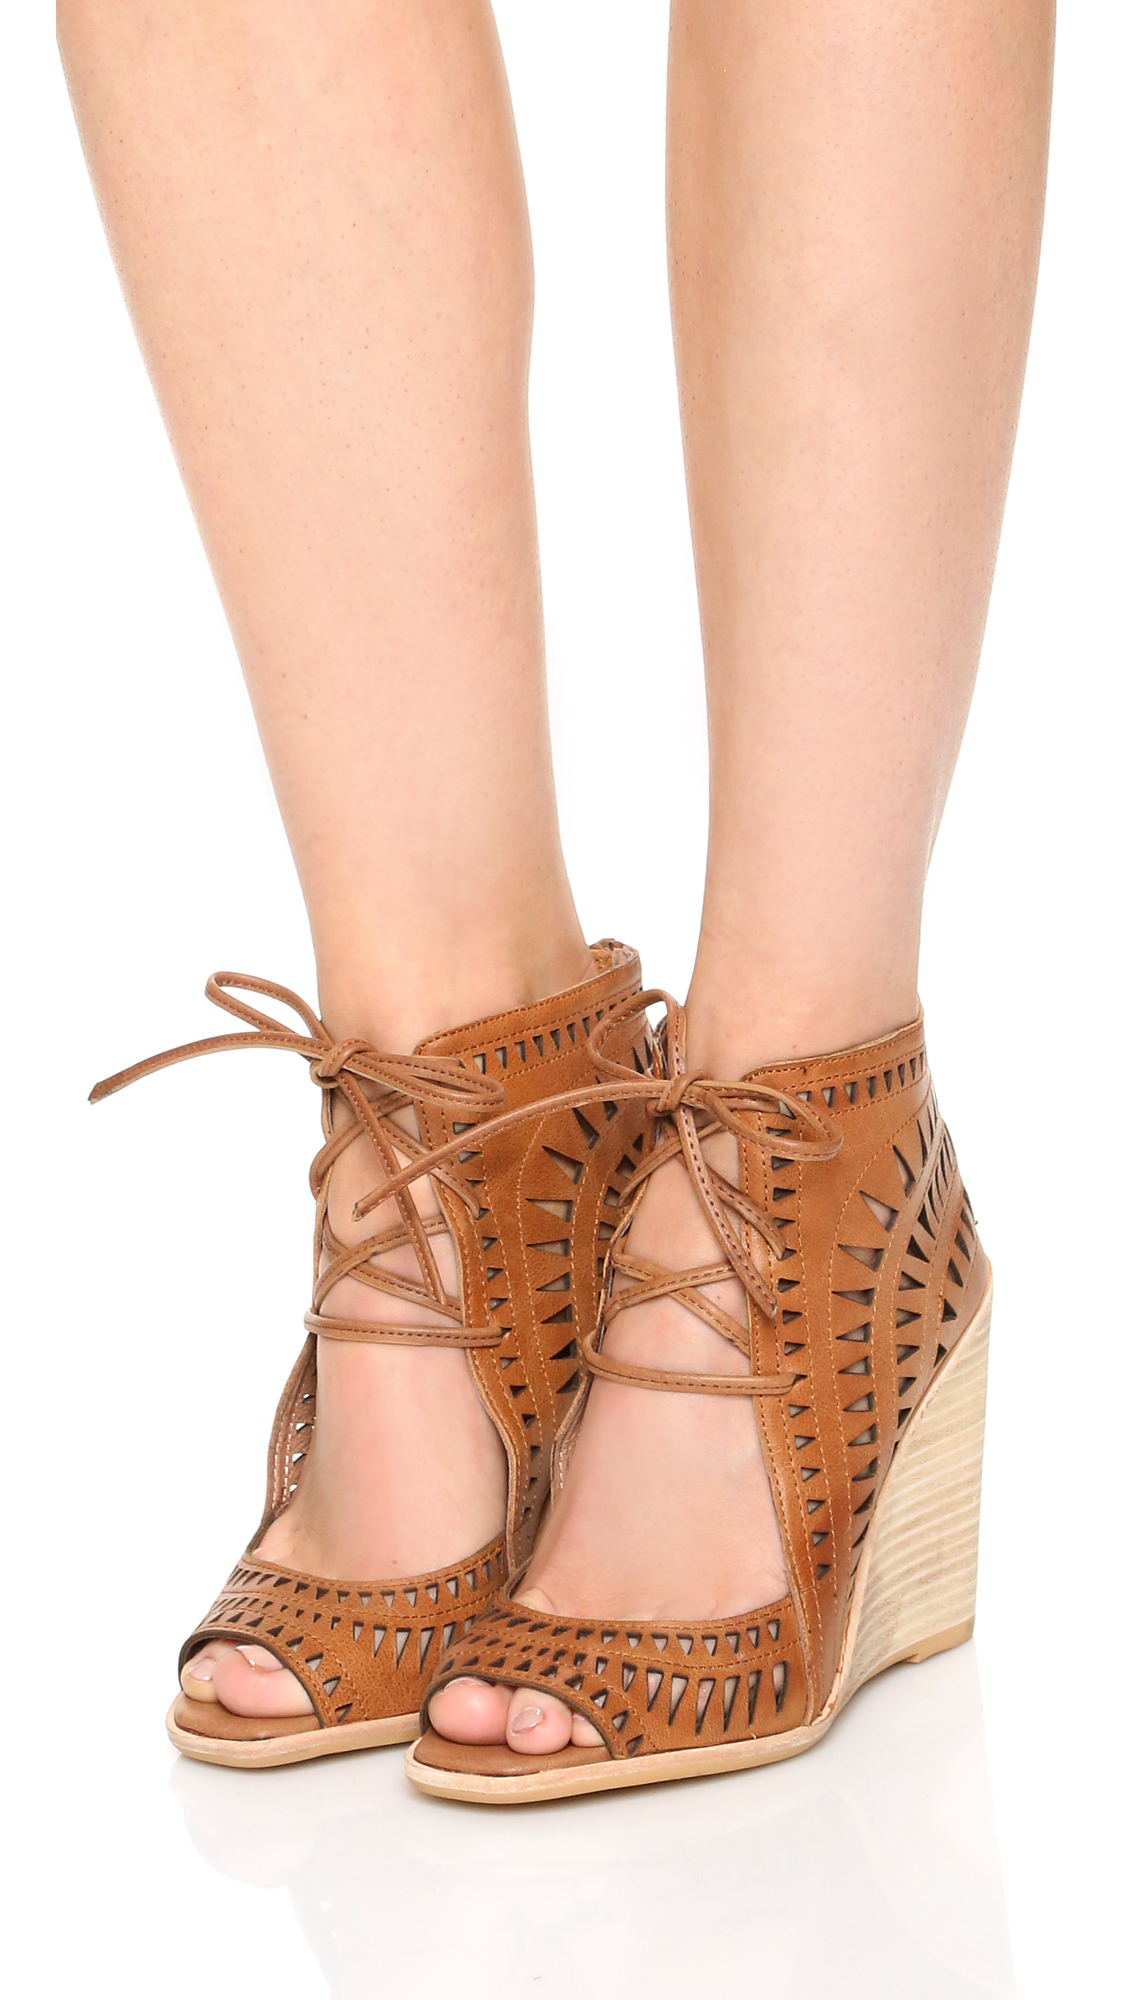 762807144fb Jeffrey Campbell Rodillo Wedge Sandals